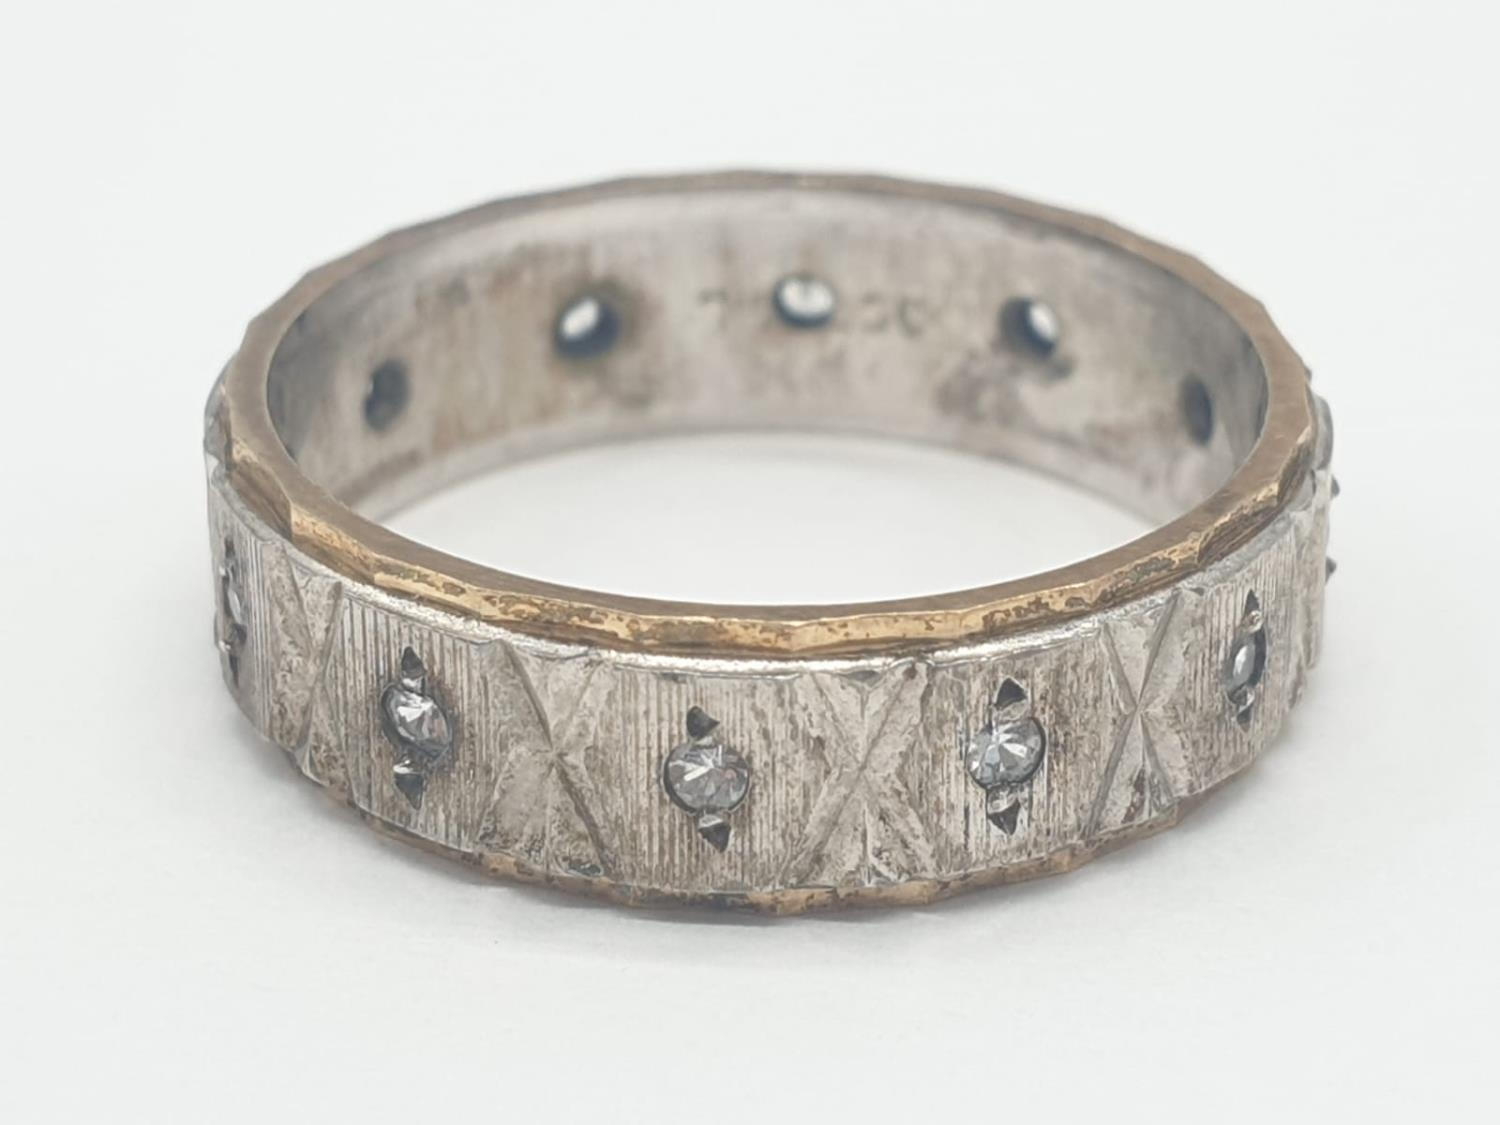 Gold and silver eternity ring, 3.2g weight and size O